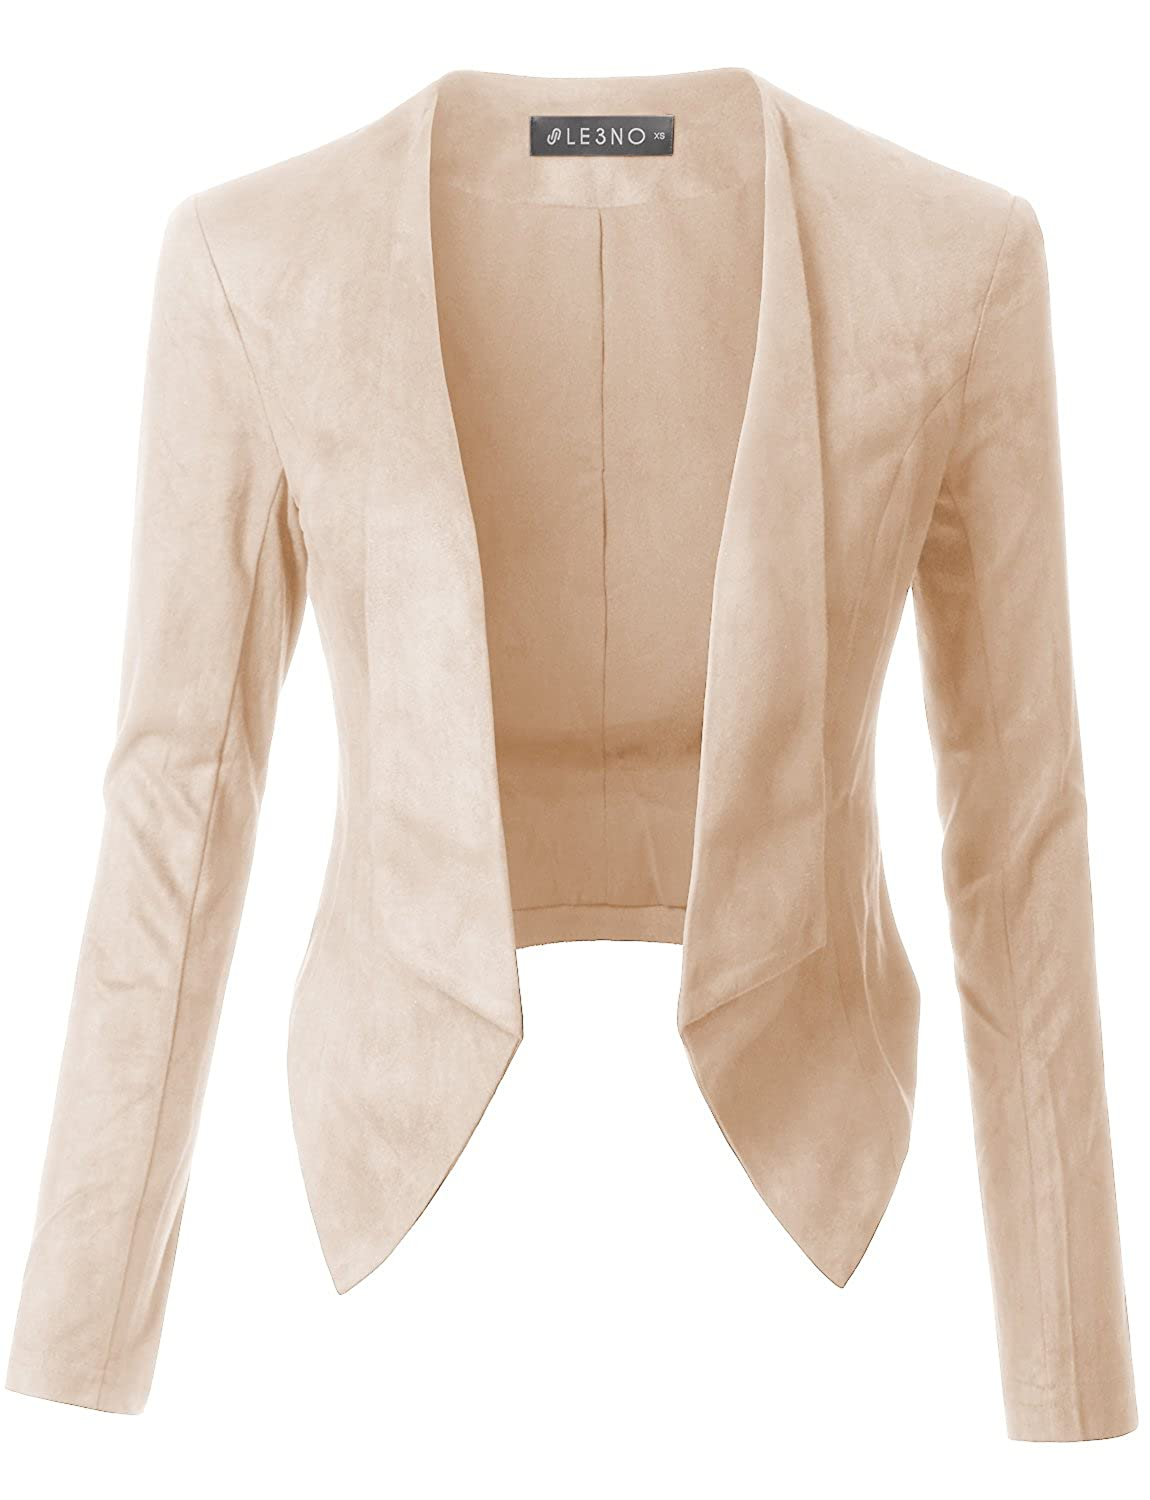 9fdf29d5a69 Top1  LE3NO Womens Lightweight Faux Suede Open Front Cropped Blazer Jacket